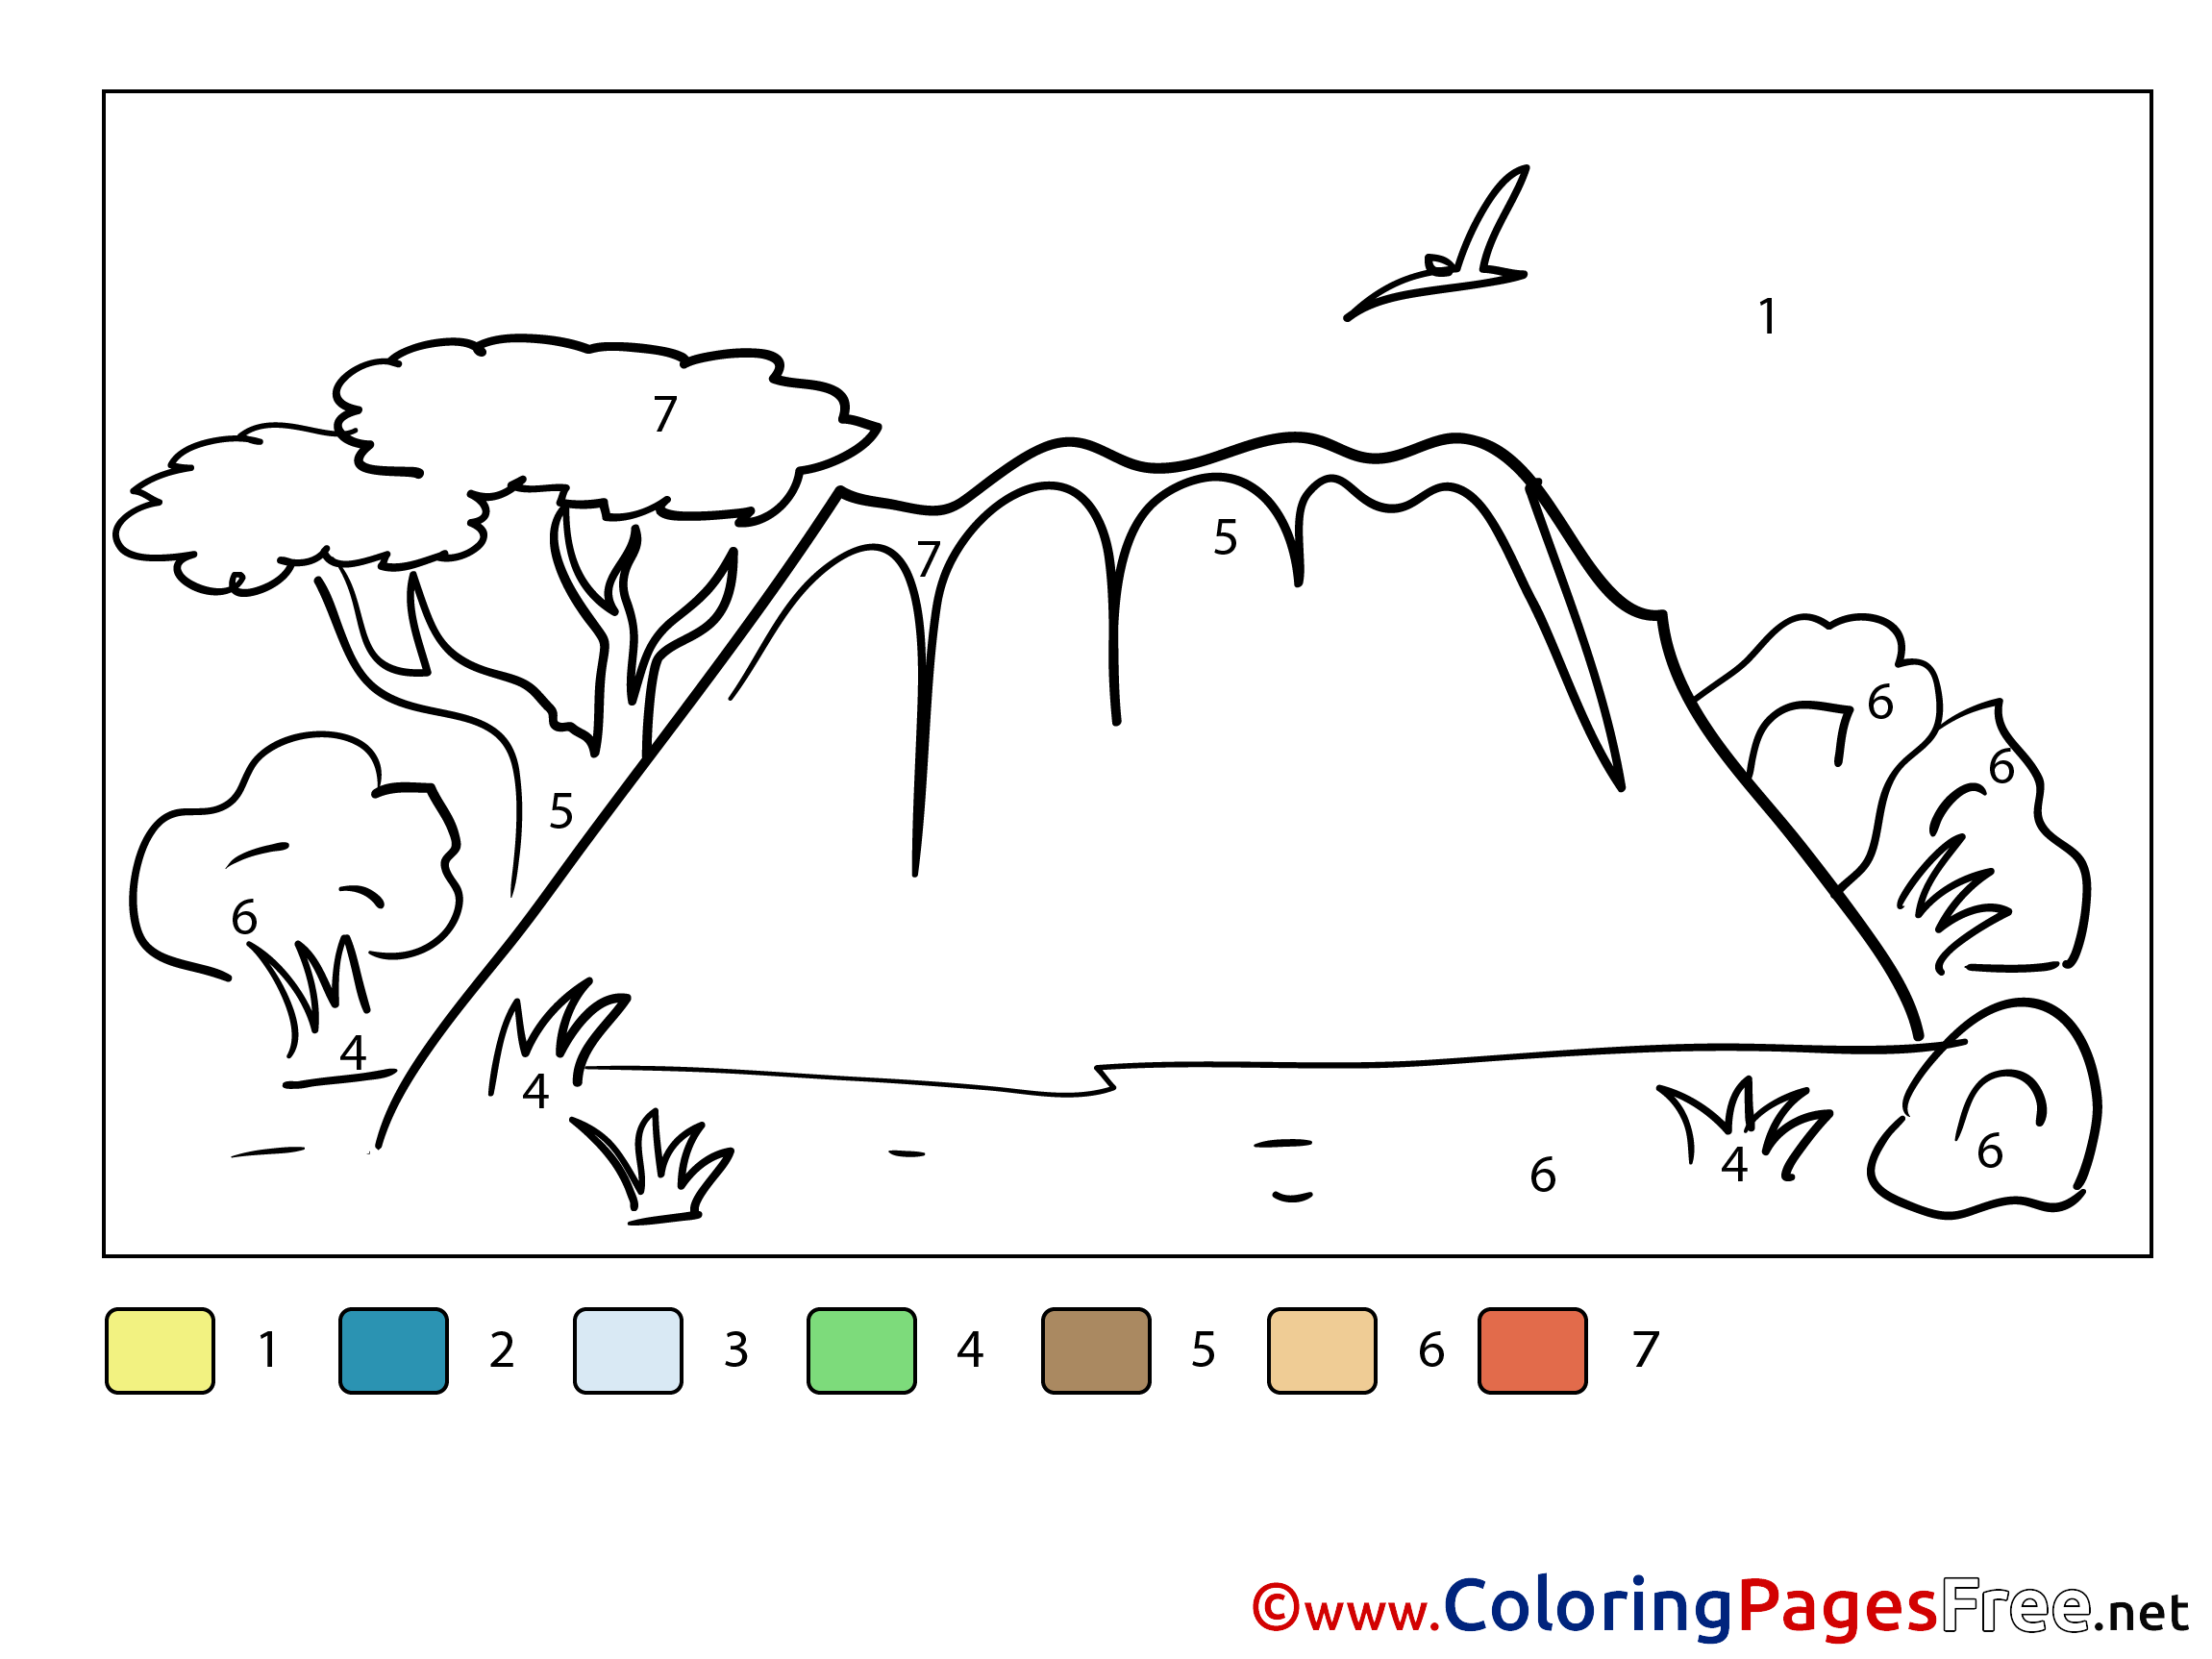 Mountain Painting By Number Coloring Pages Download